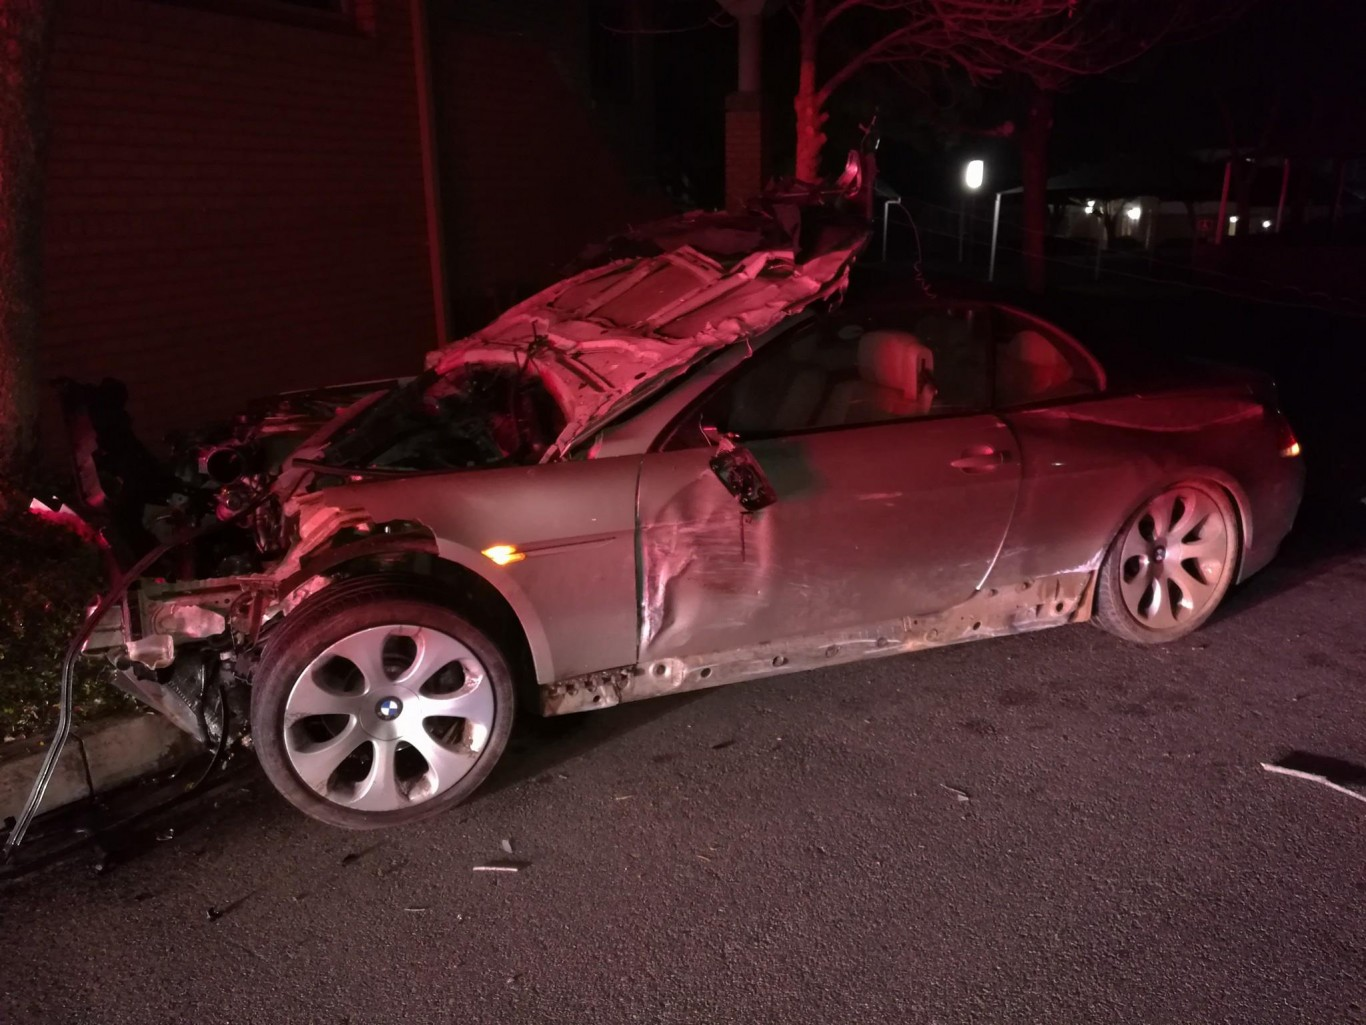 Occupants fortunate to escape serious injury in high speed crash, Woodmead